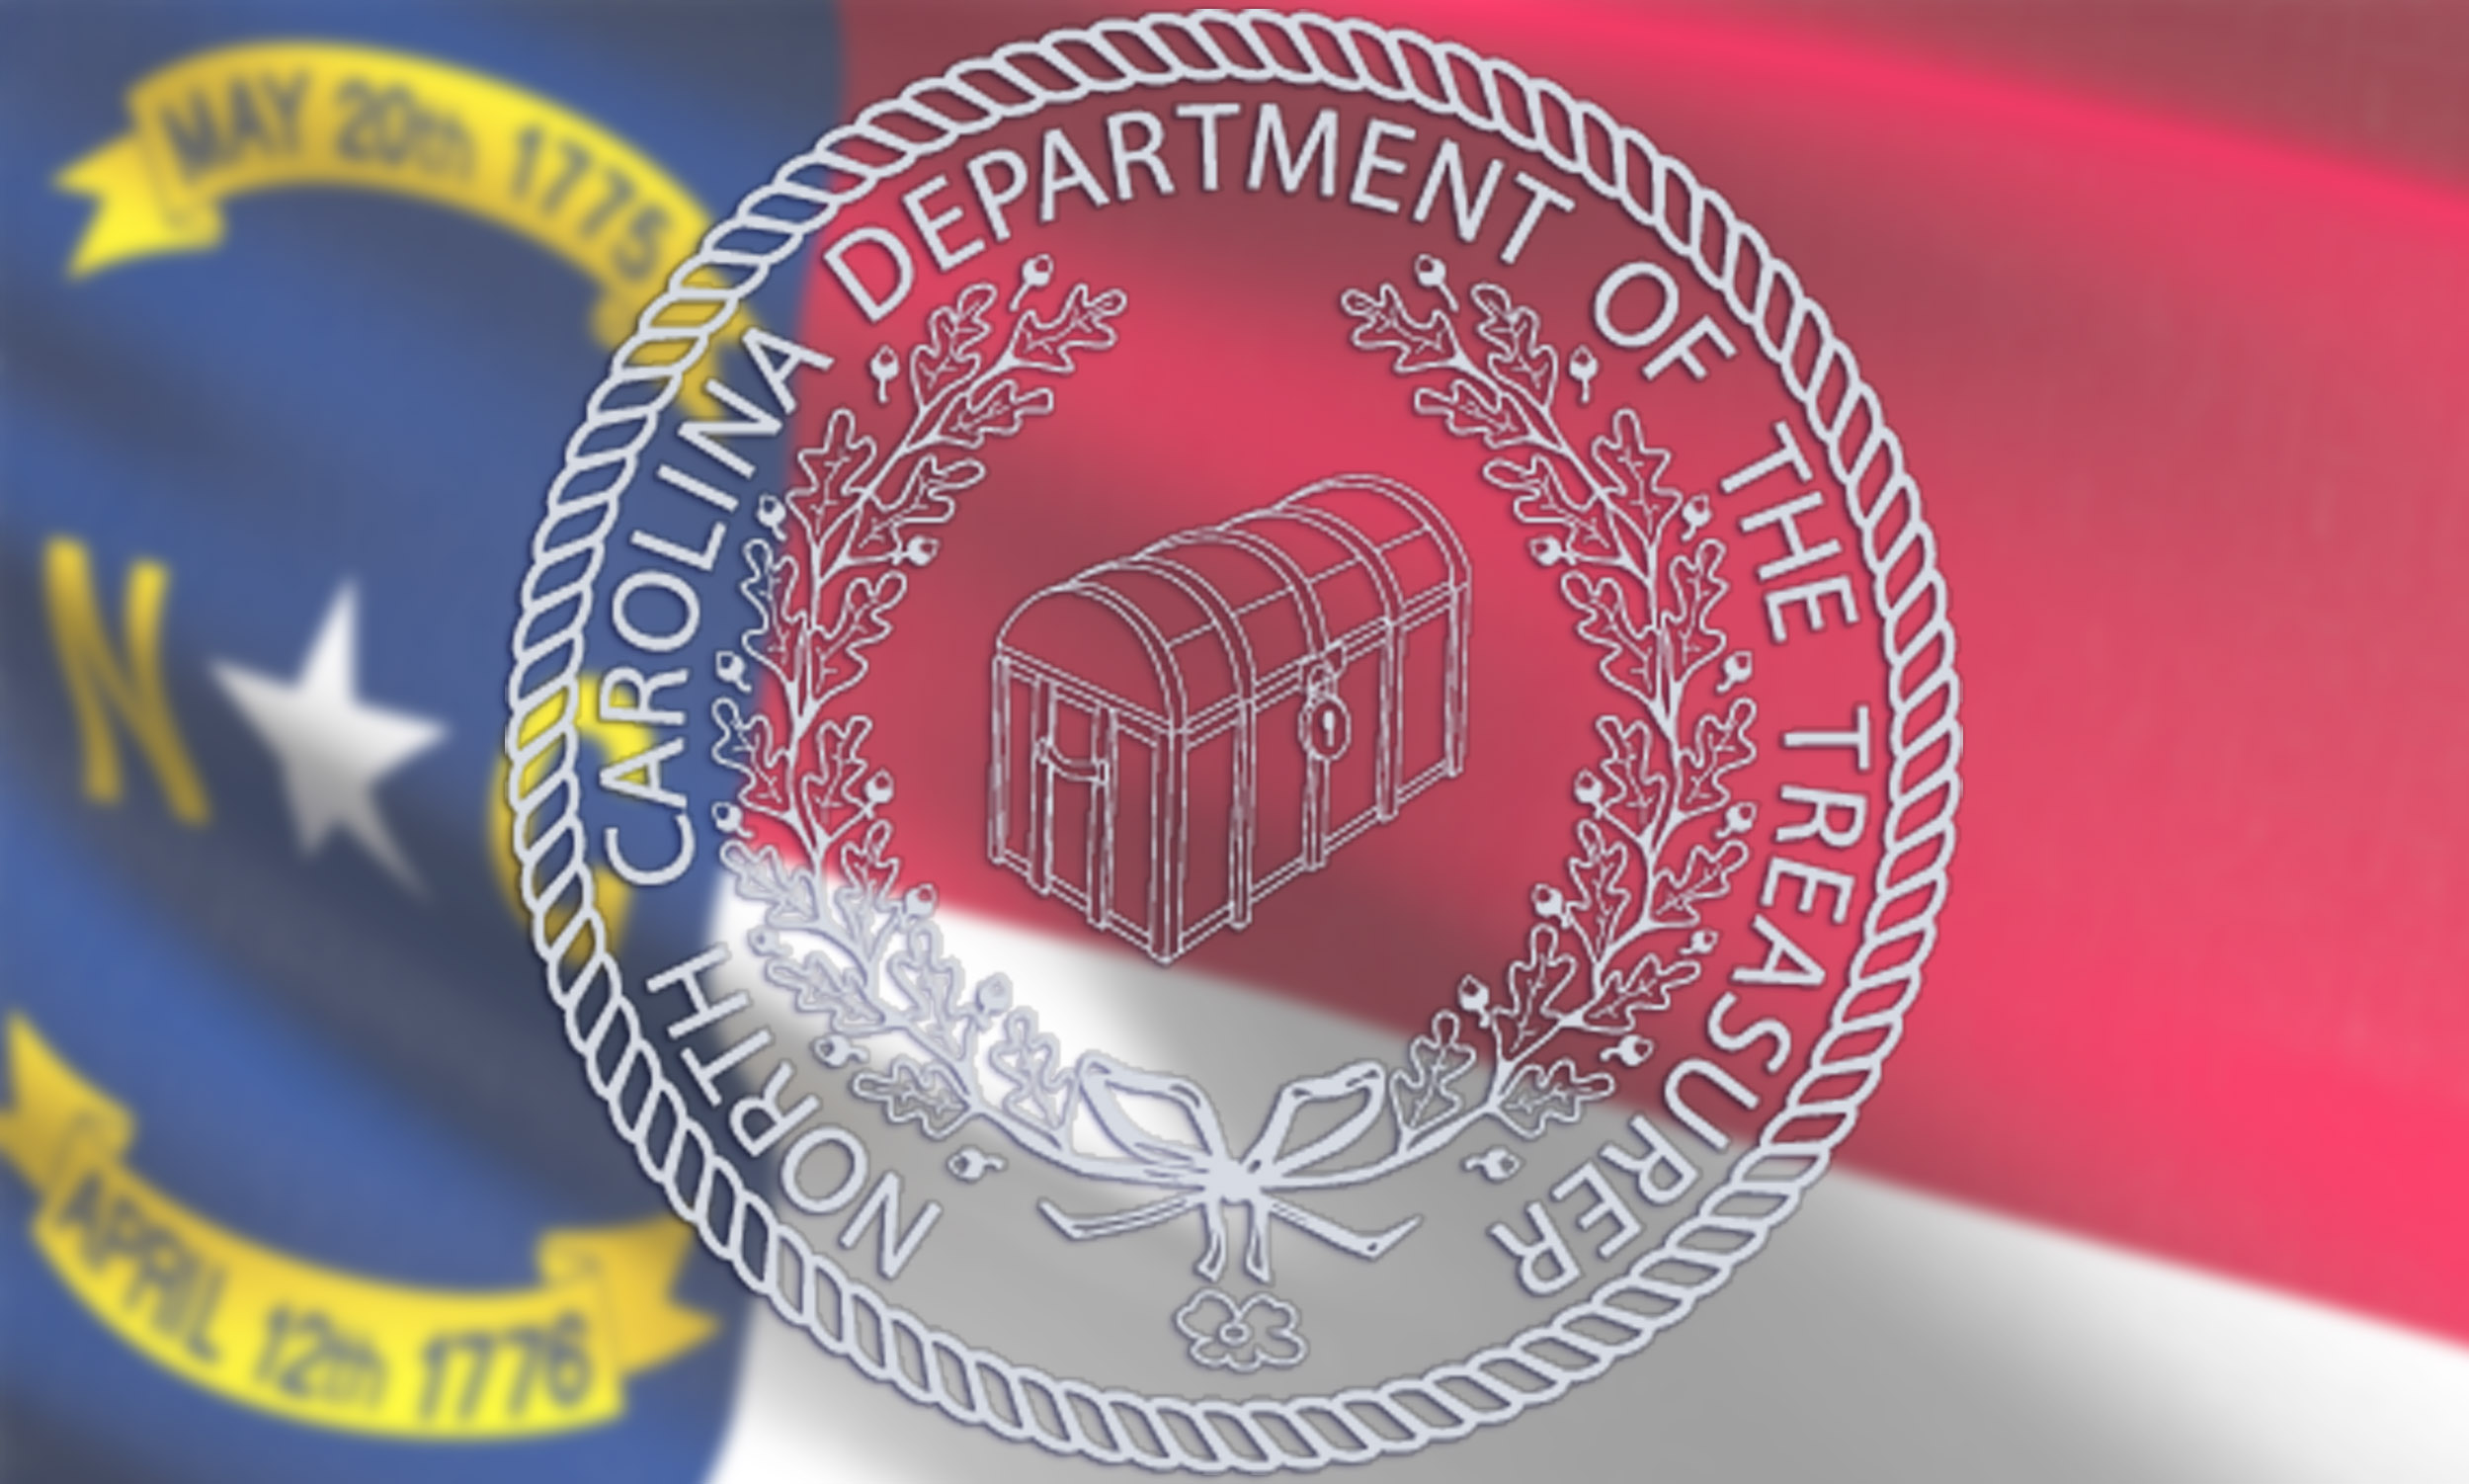 North Carolina flag with the Treasurer's seal on it